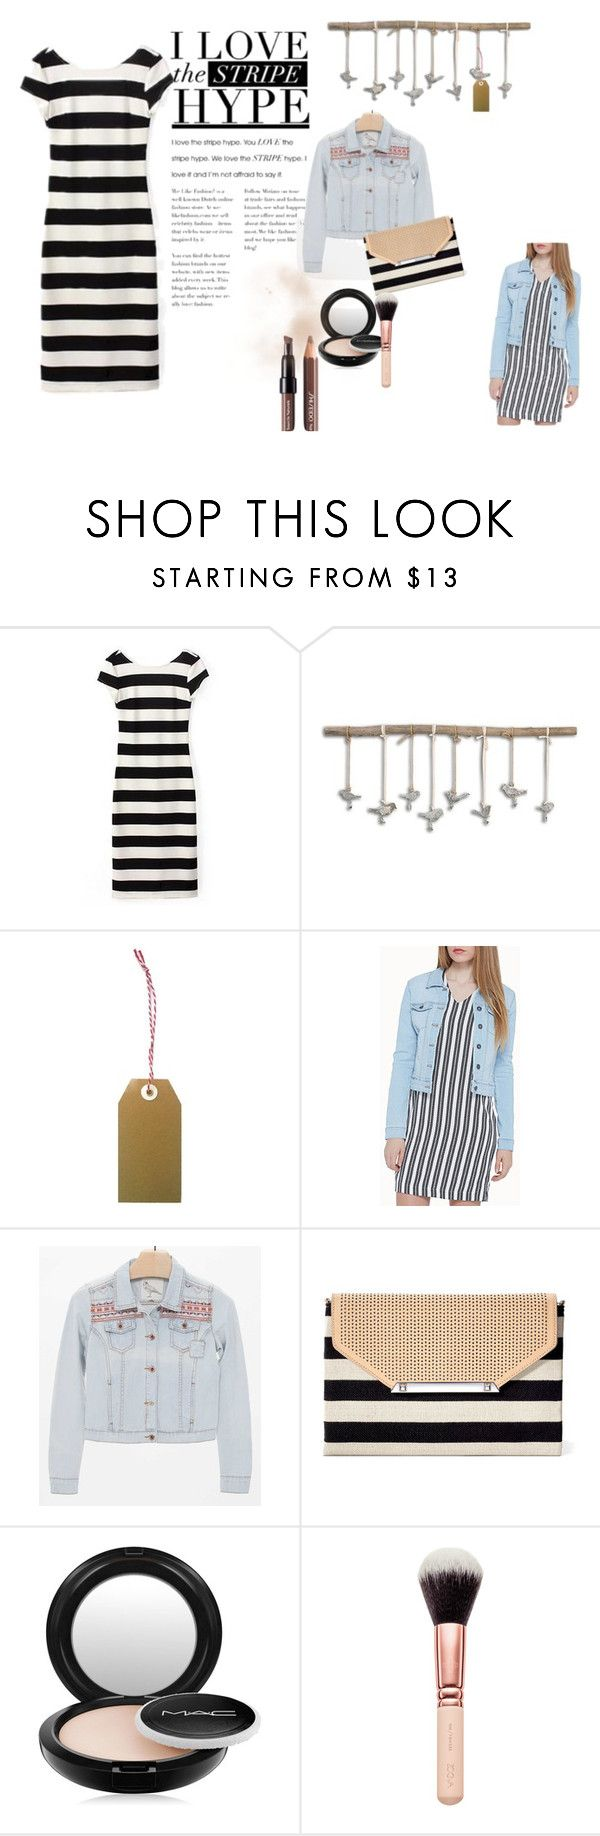 """stripe 4"" by ajriyaf on Polyvore featuring Home Decorators Collection, Vero Moda, White Crow, Stella & Dot, MAC Cosmetics and Shiseido"